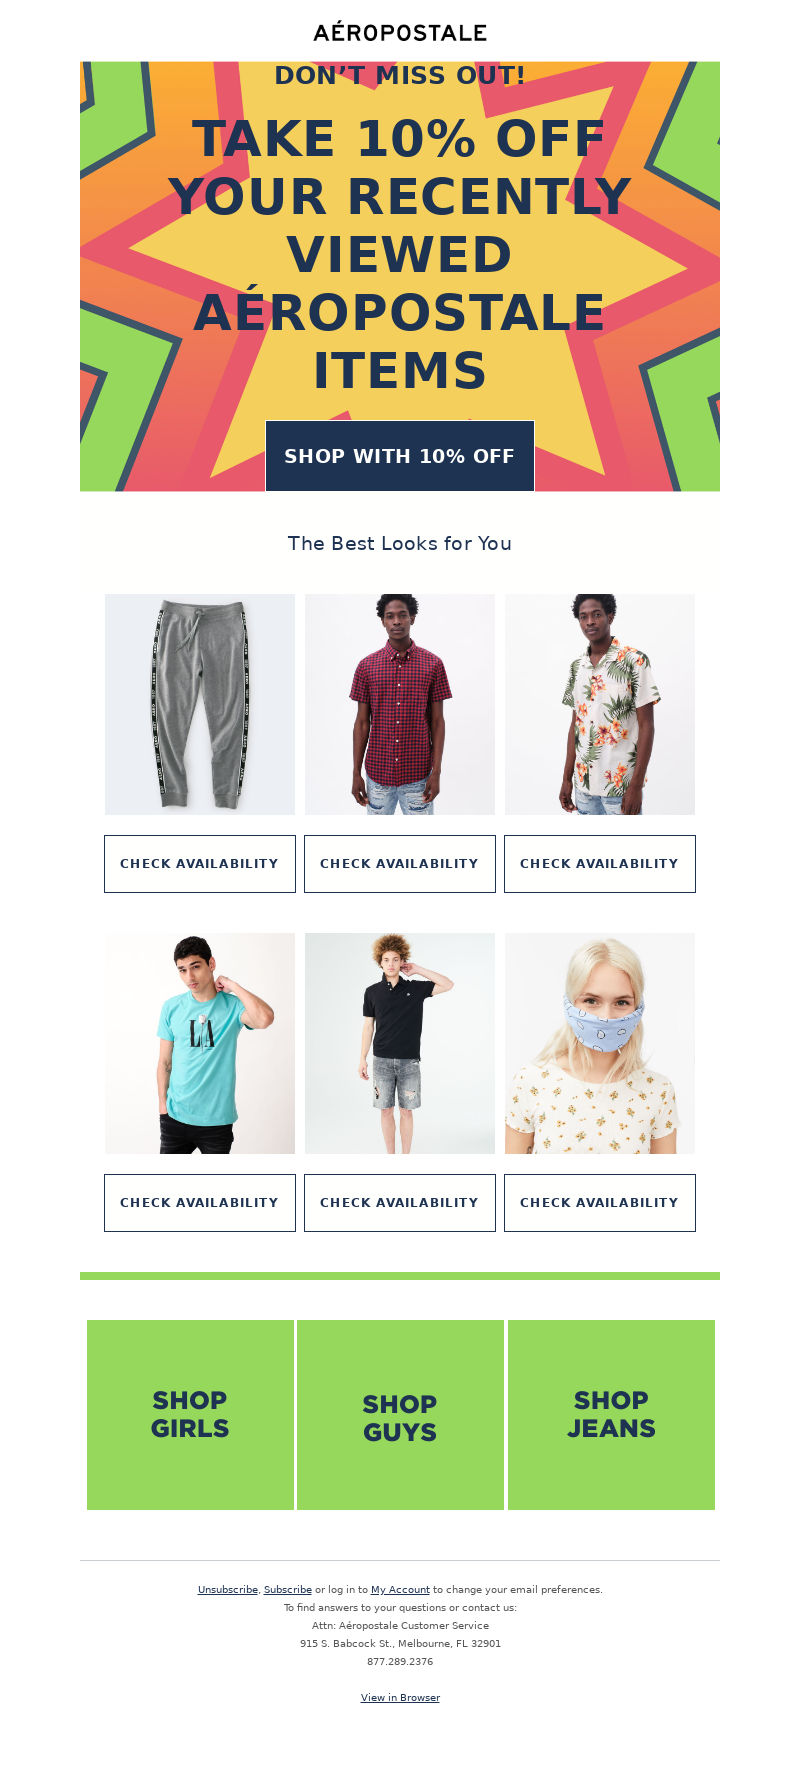 Aeropostale - Your recently viewed items are 10% off